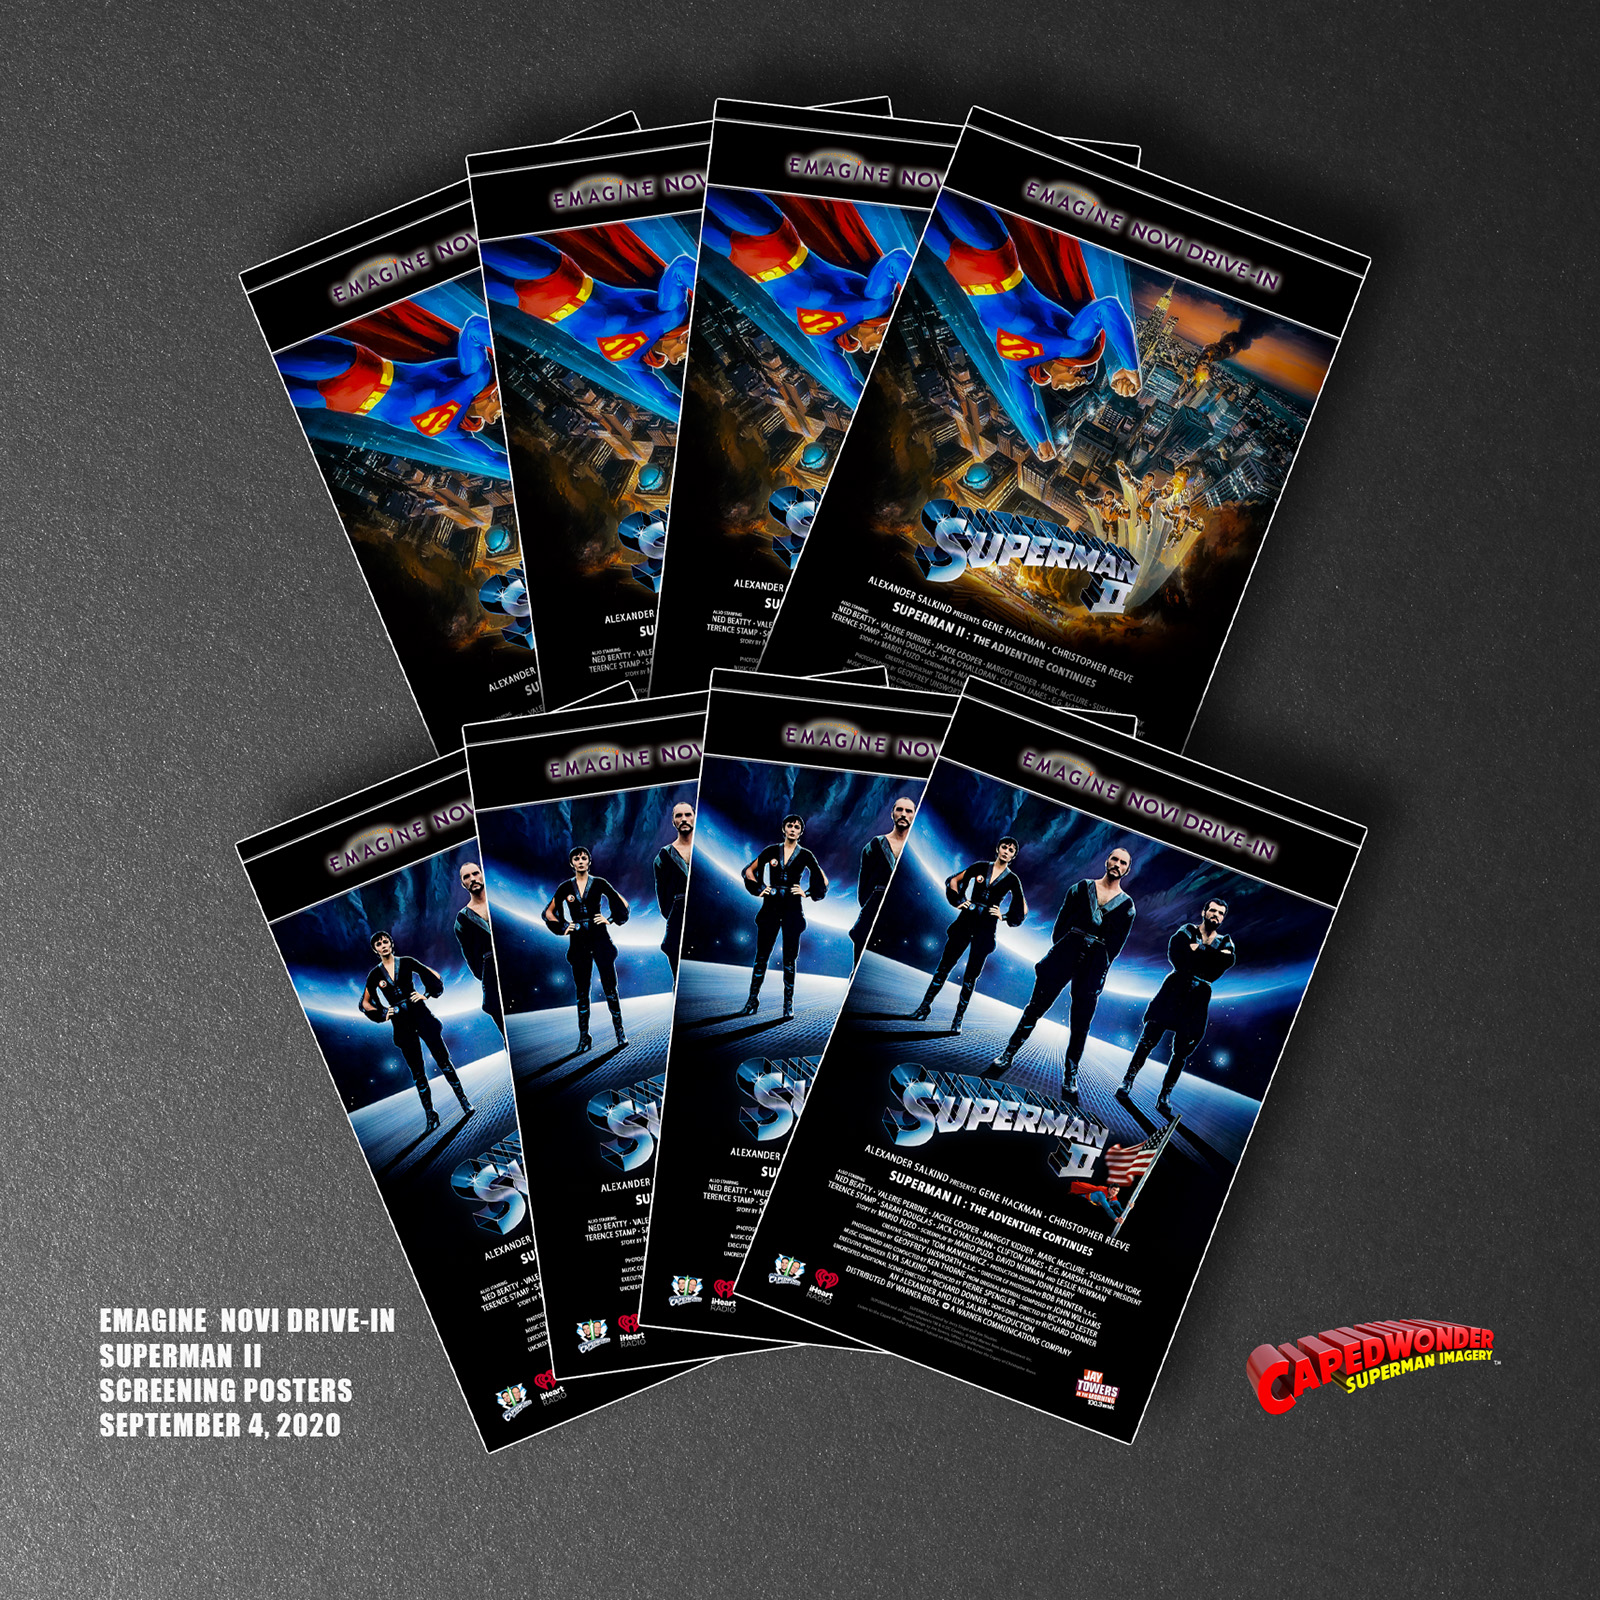 Superman II Drive-In Giveaway Posters